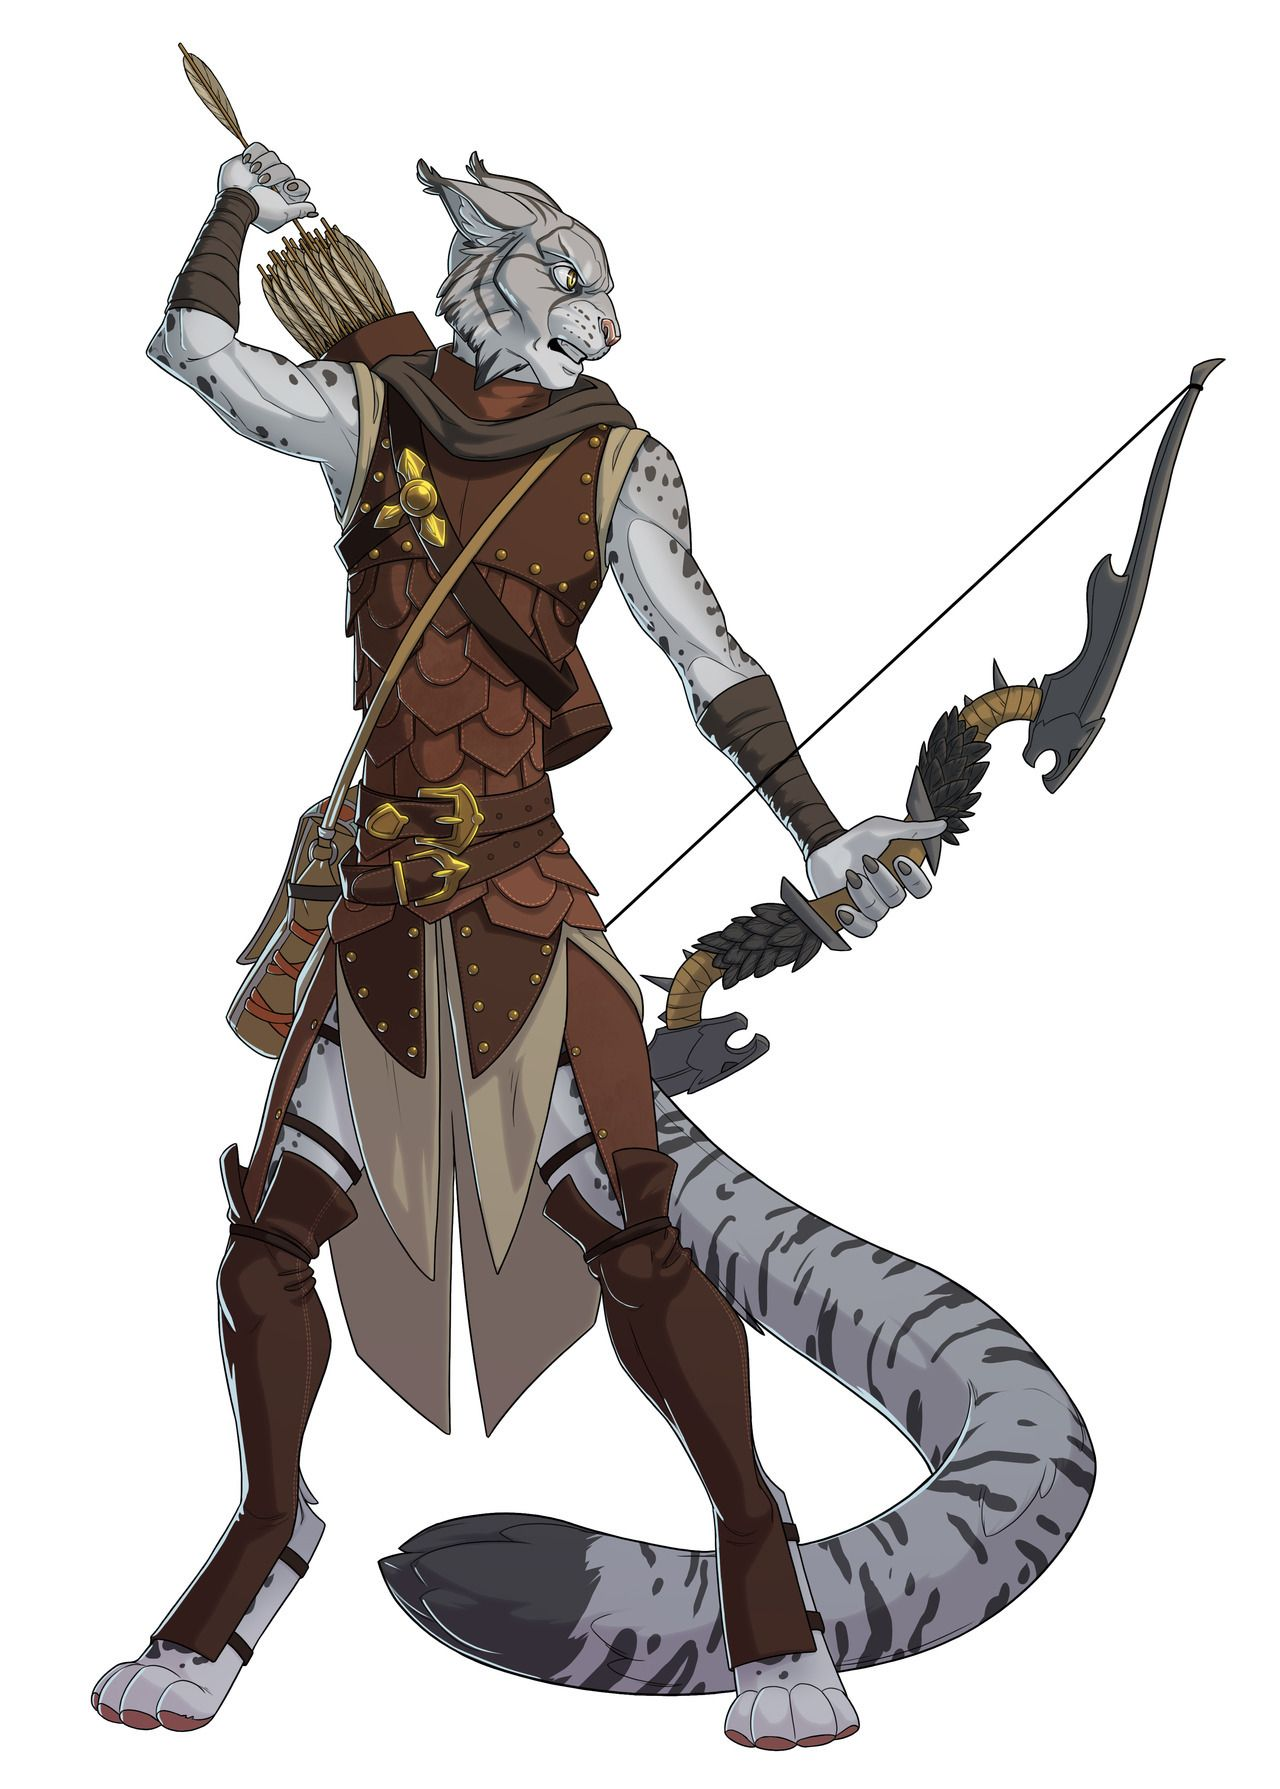 50 Tabaxi Ideas Dnd Characters Fantasy Characters Fantasy Races A tabaxi resembles a lithe, graceful, athletic human with a feline head and a tail. 50 tabaxi ideas dnd characters